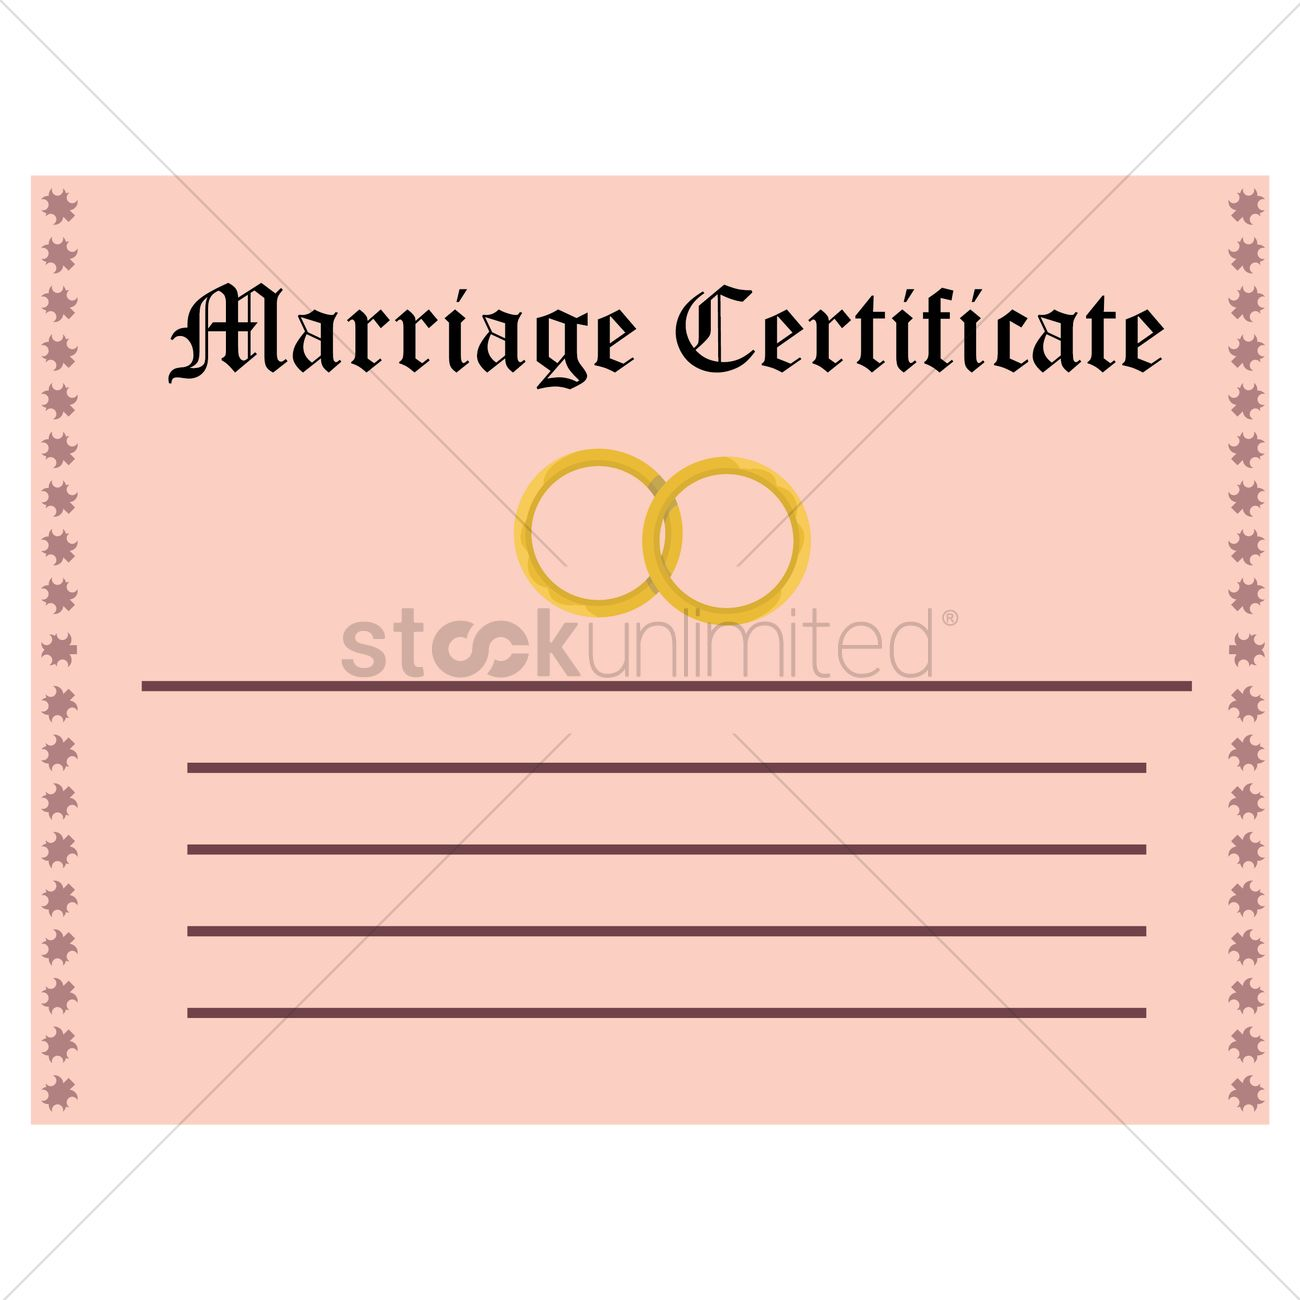 Marriage certificate vector image 1335893 stockunlimited marriage certificate vector graphic 1betcityfo Gallery